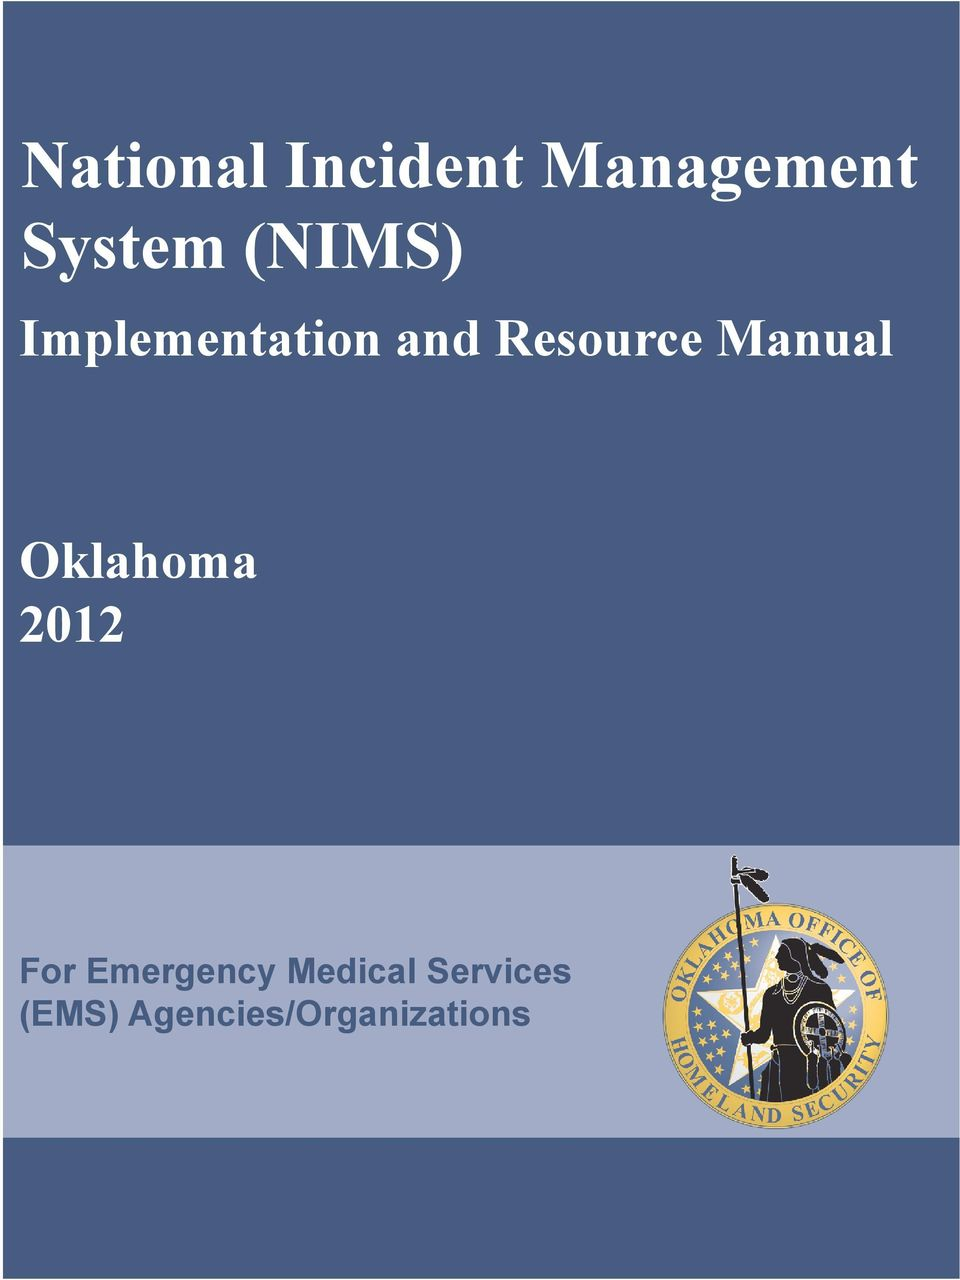 Manual Oklahoma 2012 For Emergency